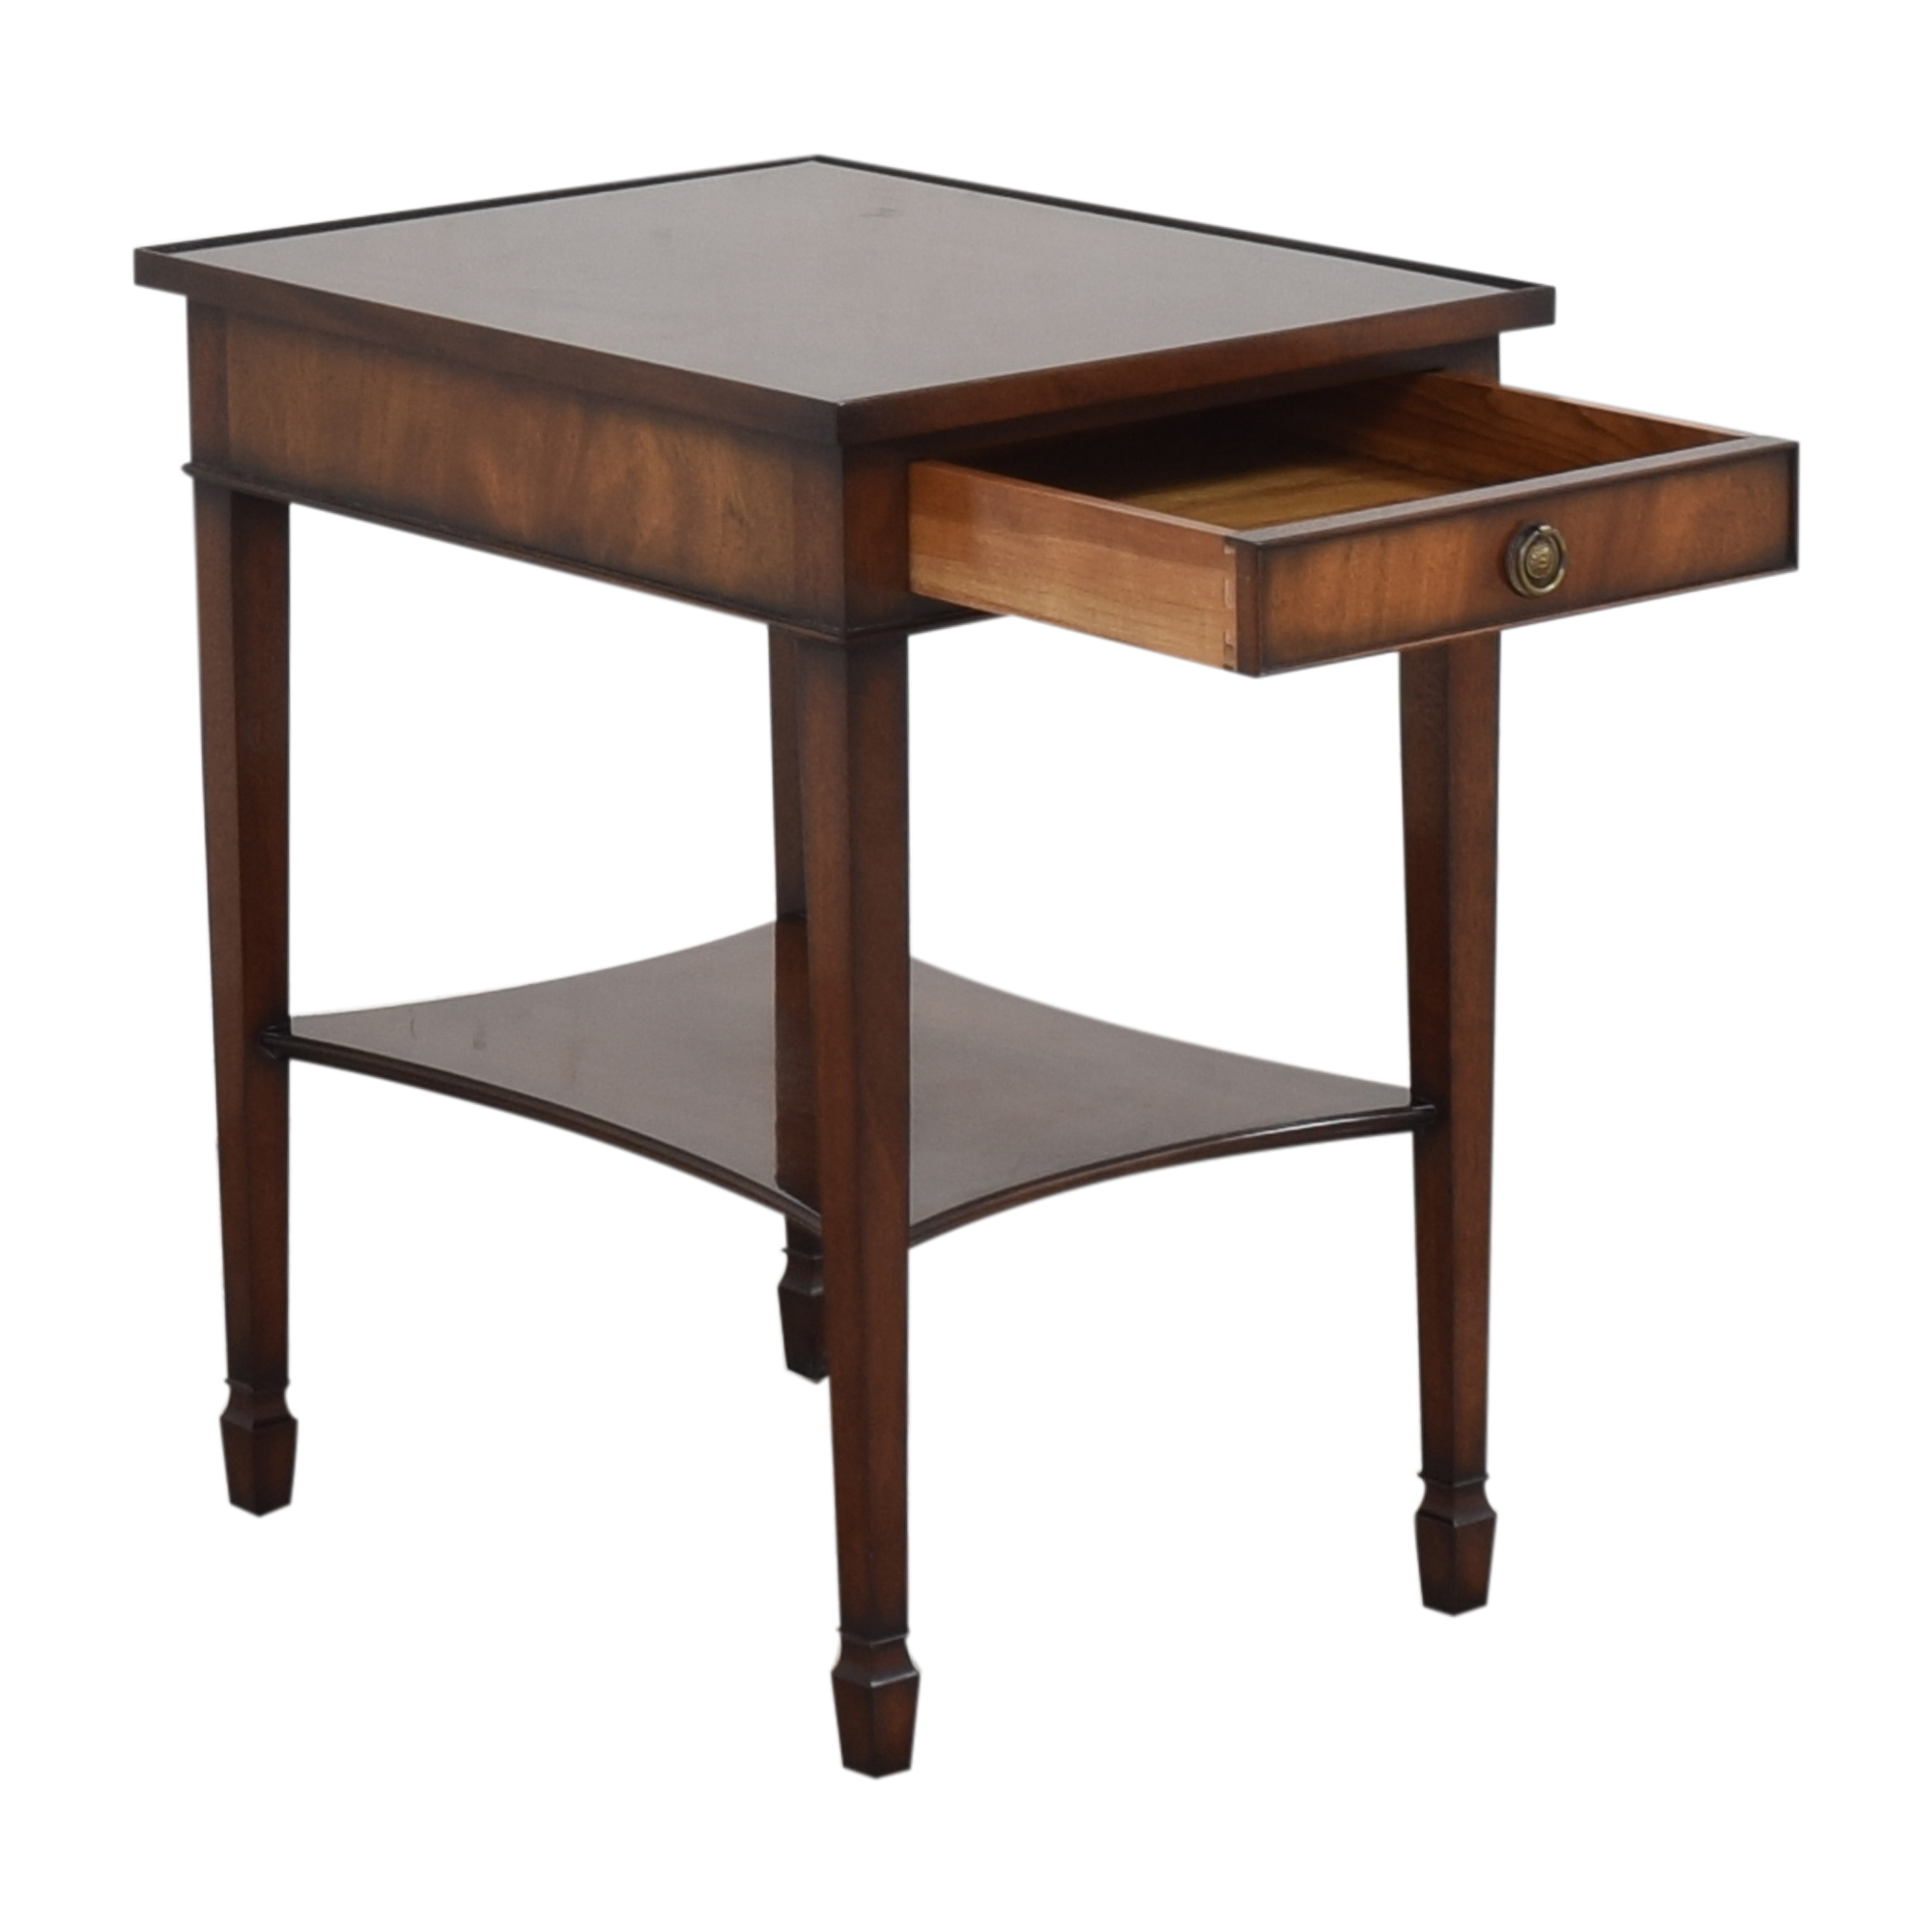 shop  Smith & Watson Single Drawer End Table Smith & Watson